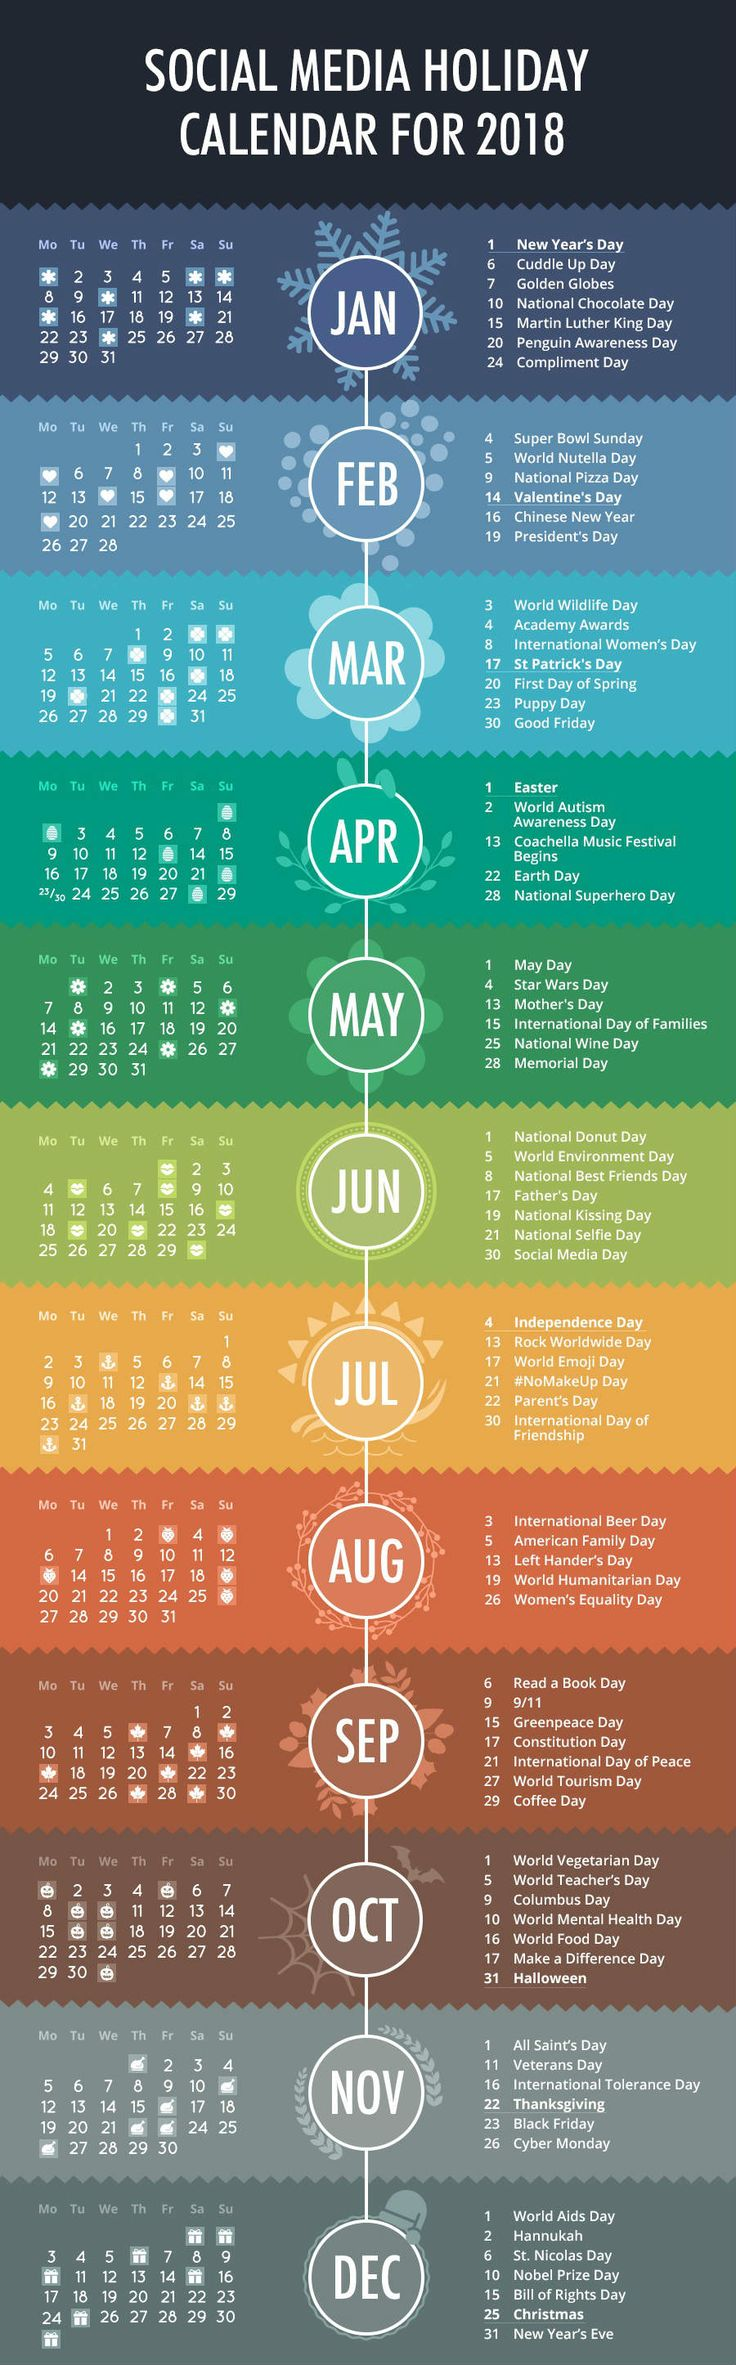 To help you organize your work, Depositphotos created 2018 social media holiday calendar with the most important events and holidays of 2018. Among them are: Valentine's Day, St. Patrick's Day, Golden Globes, Cuddle Up Day, National Donut Day, Black Friday, Christmas, and others.